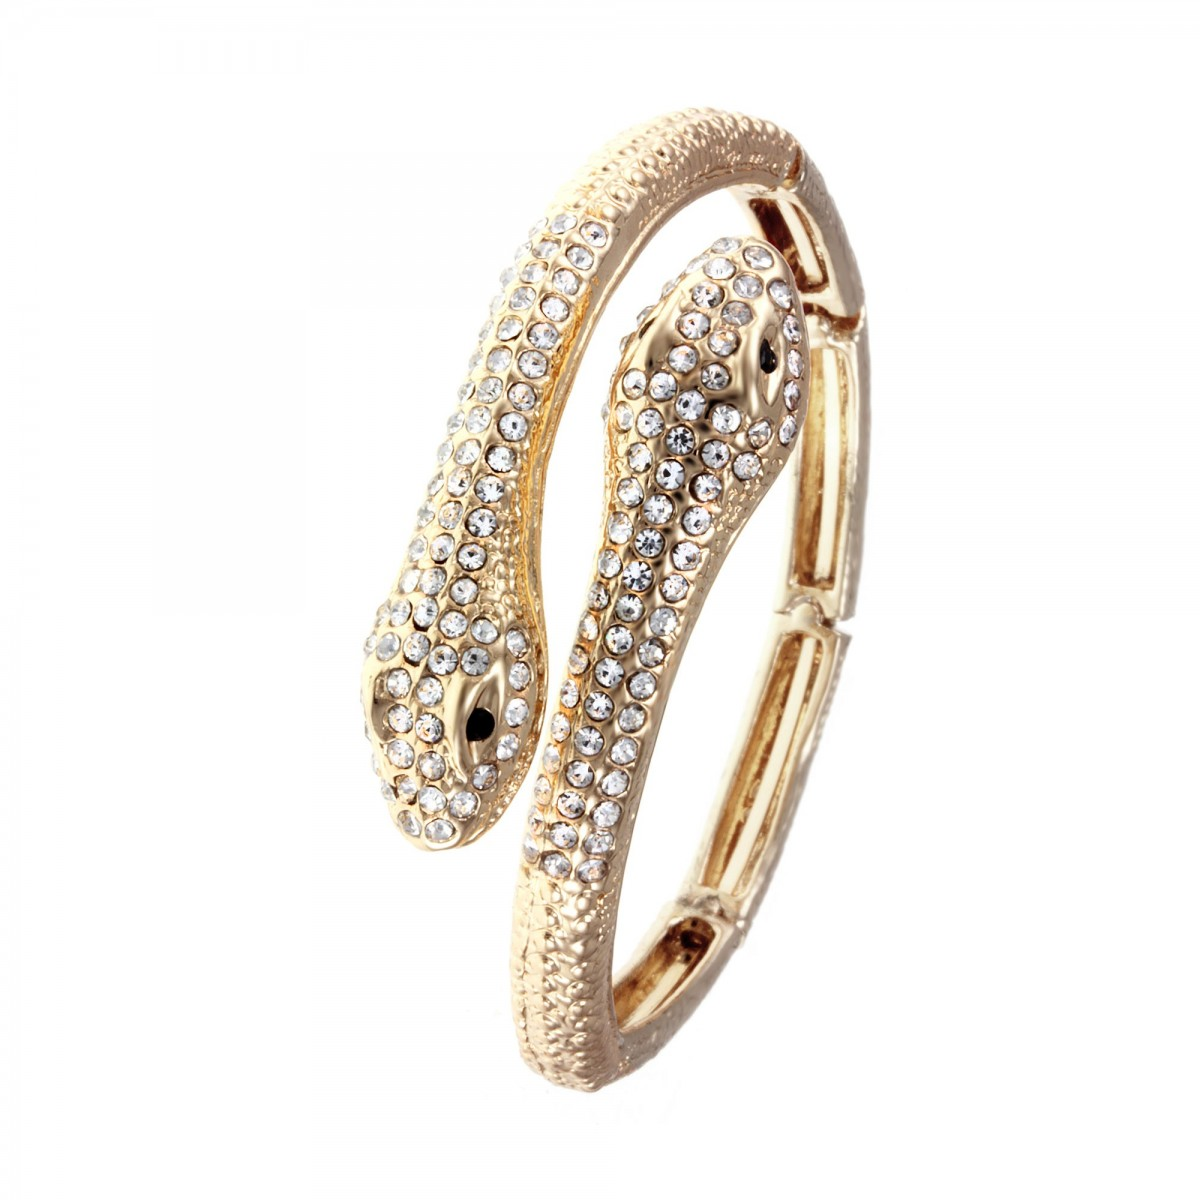 Bracelet bangle serpent So Charm made with crystals from Swarovski